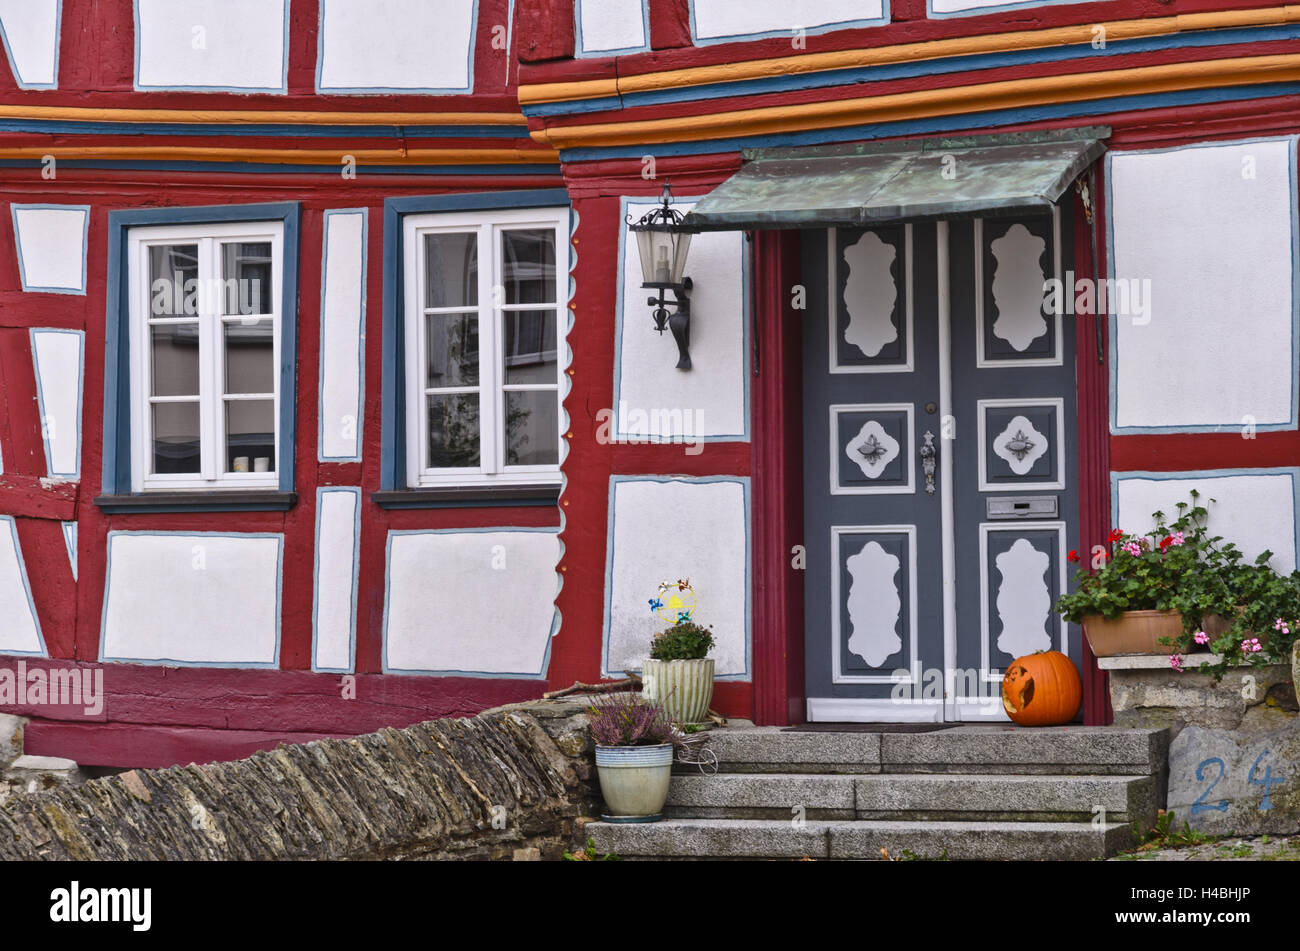 idstein german half timbered house road stock photos idstein german half timbered house road. Black Bedroom Furniture Sets. Home Design Ideas